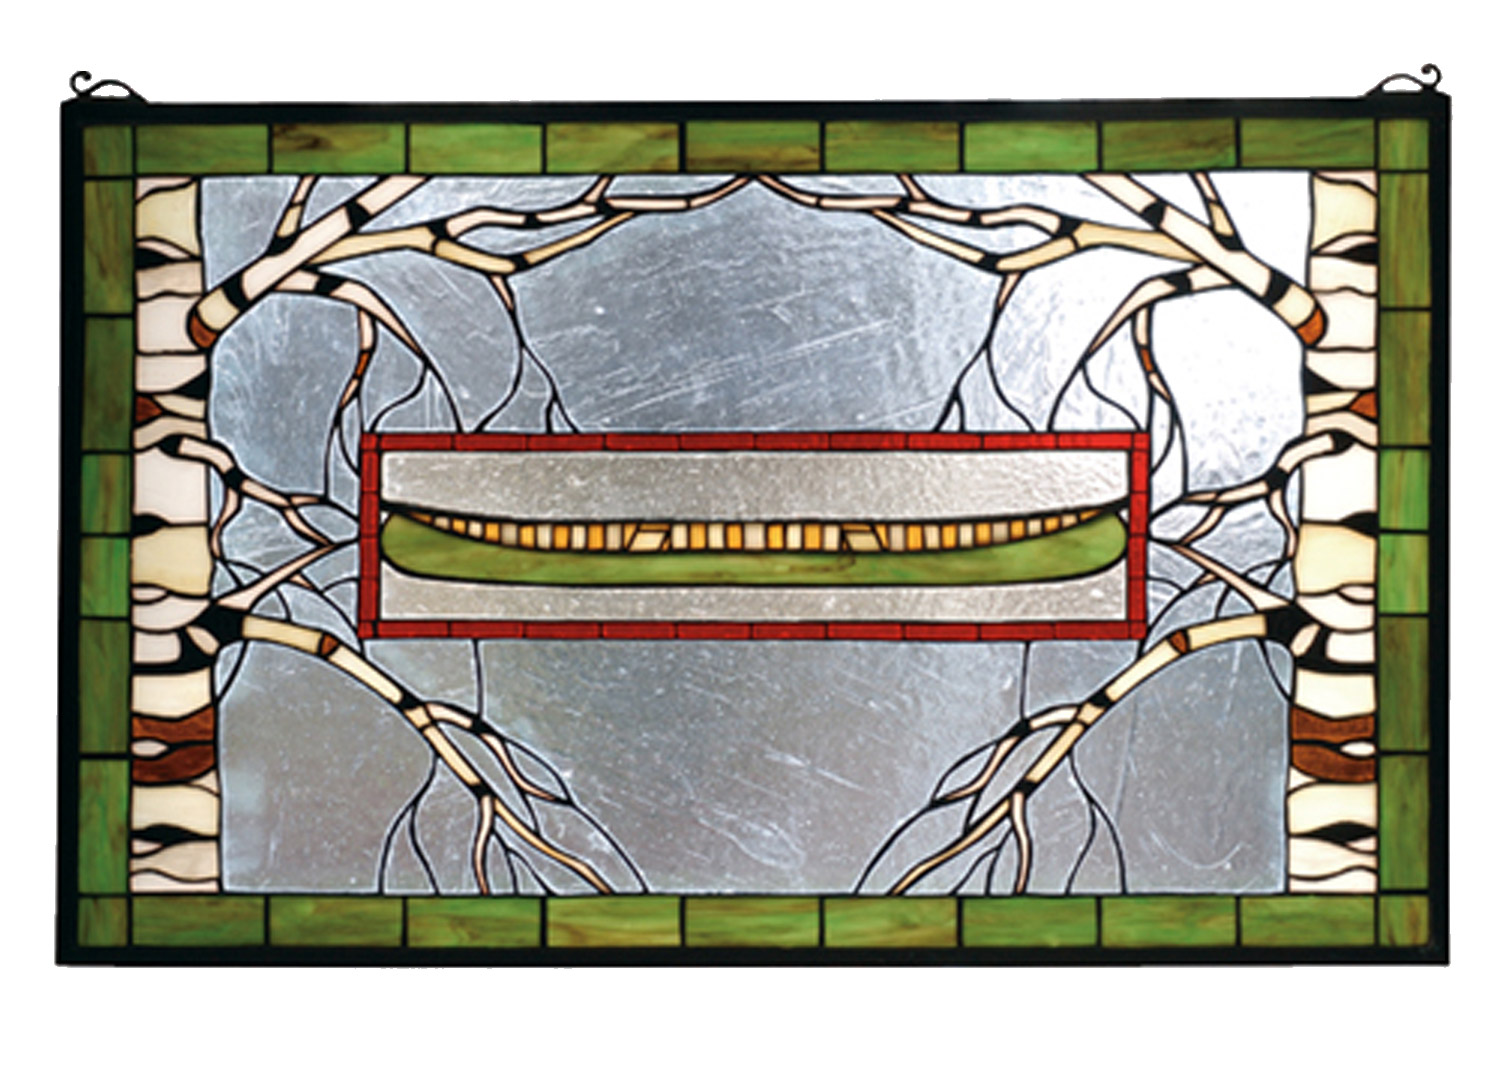 Meyda 70490 North Country Canoe Stained Glass Window